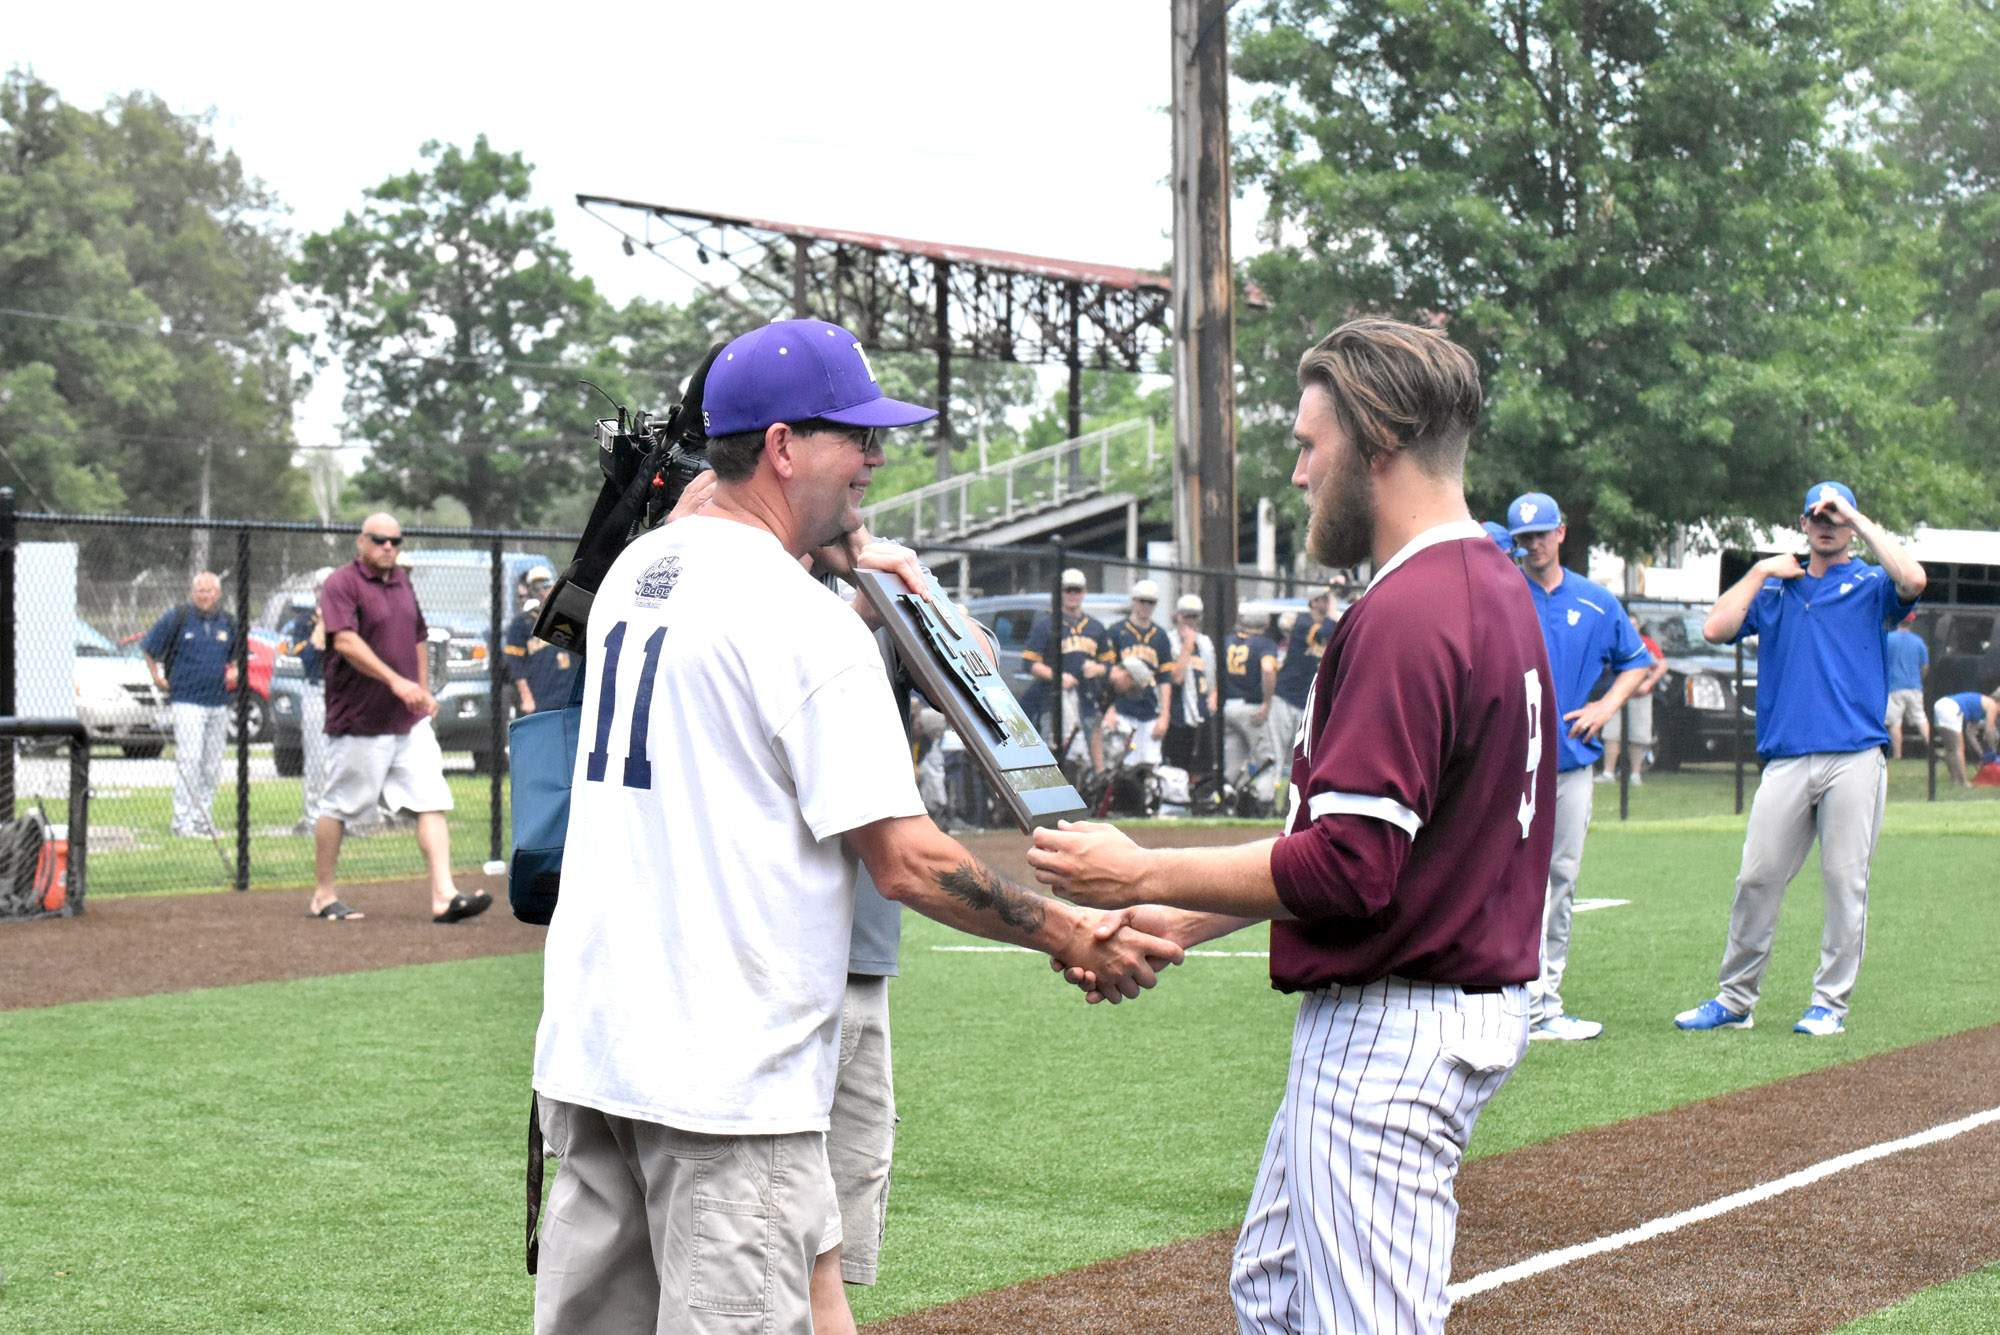 Benton senior Ian McMahon accepts the sectional plaque from Jay Thompson, head baseball coach of the host school Harrisburg, following the Rangers' 3-2 10-inning victory Saturday.